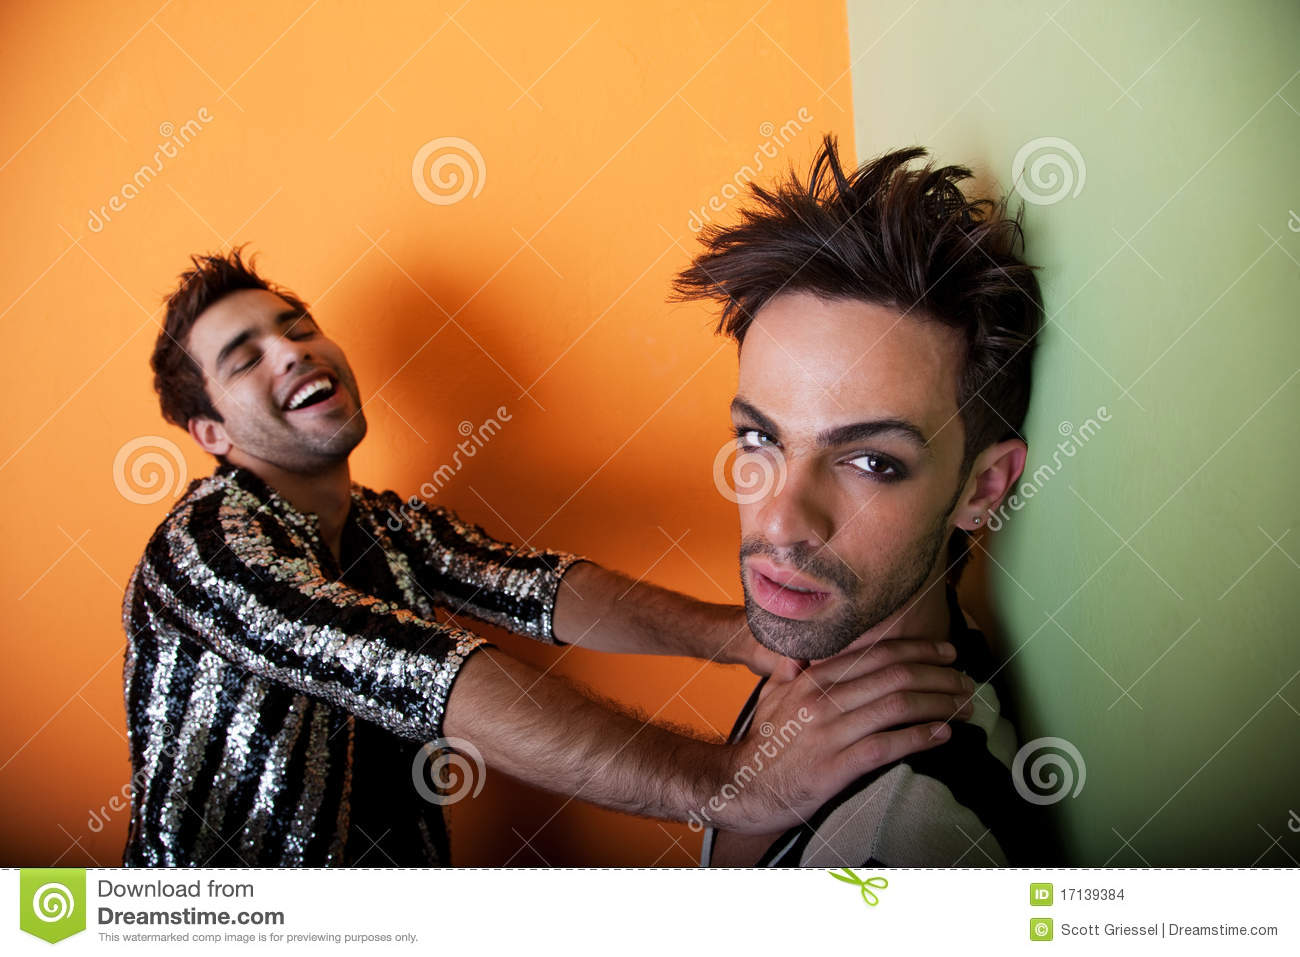 Gay Sexy Download in good looking and gay couple stock photo - image: 17139384